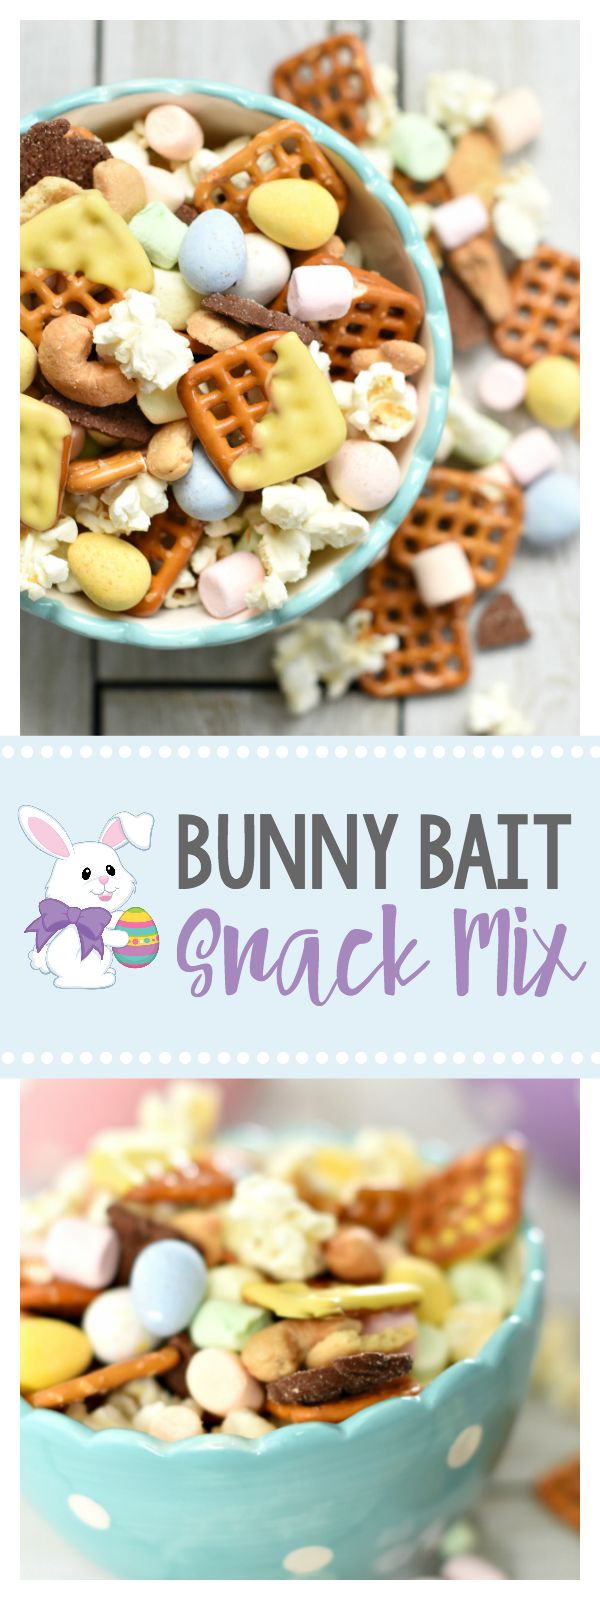 Bunny Bait Snack Mix for Easter-Great Snack for Kids #easter #easterfun